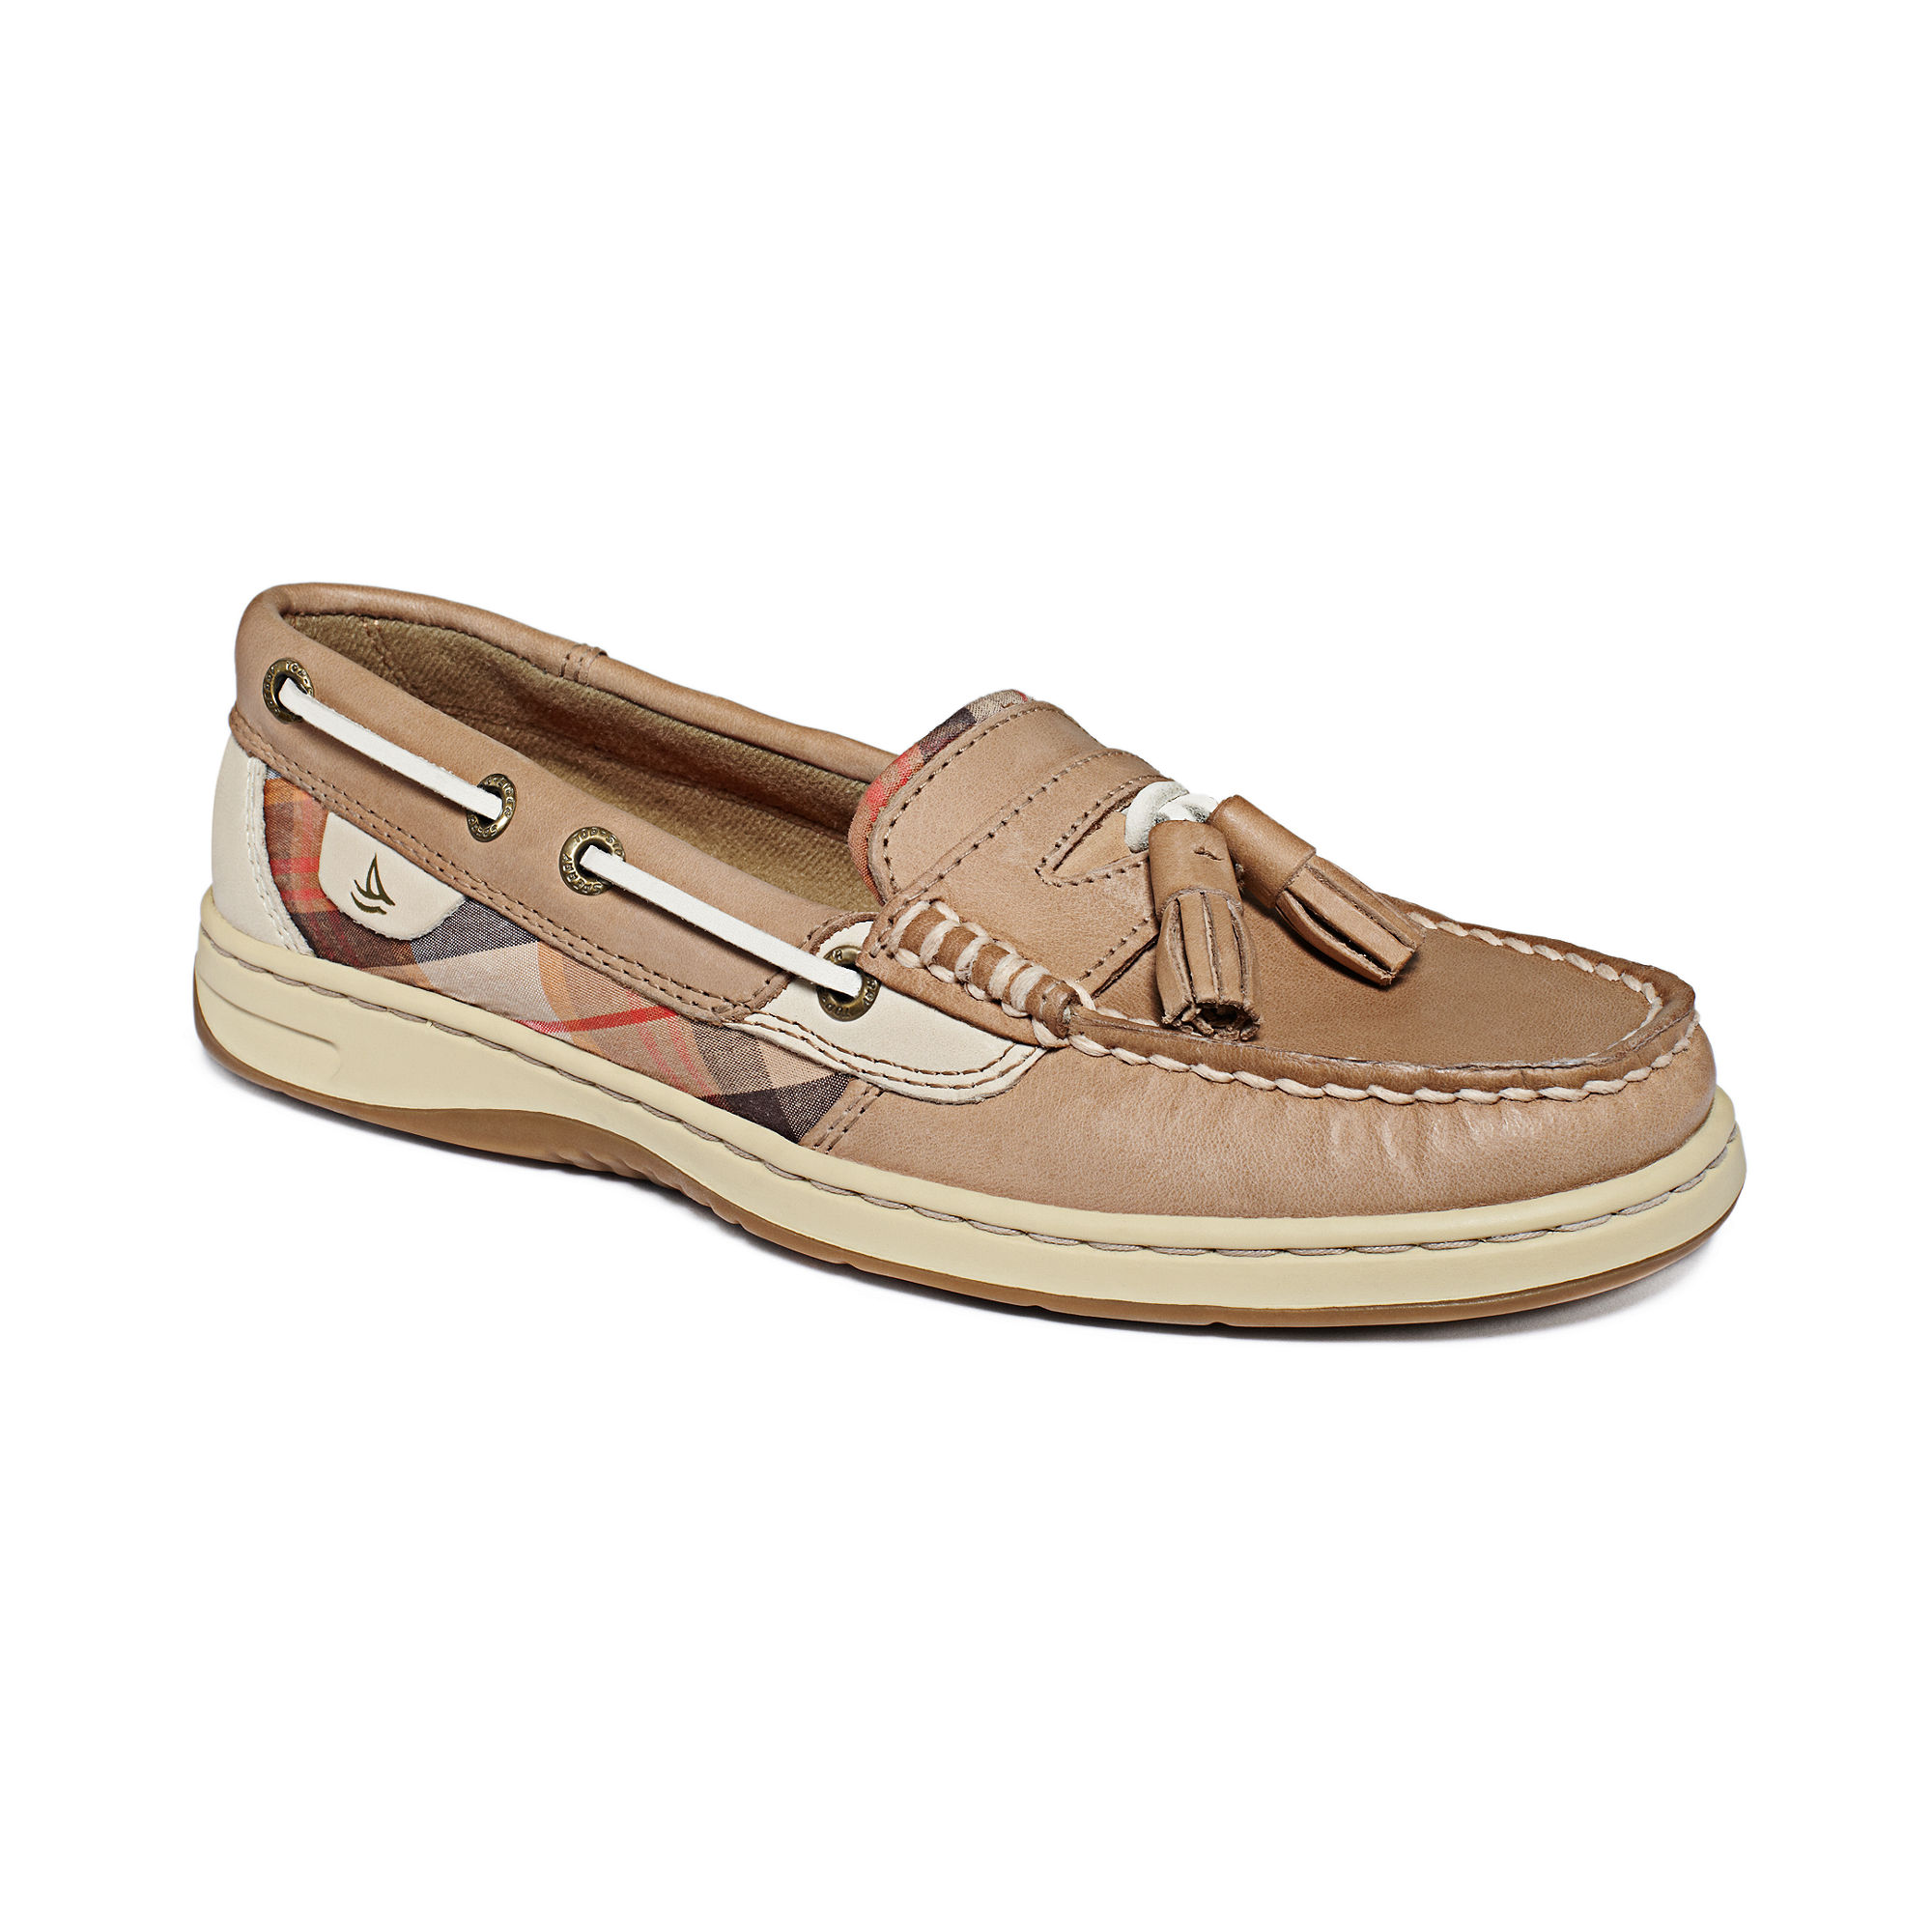 Sperry top sider tasselfish boat shoes in brown lyst for Best boat shoes for fishing